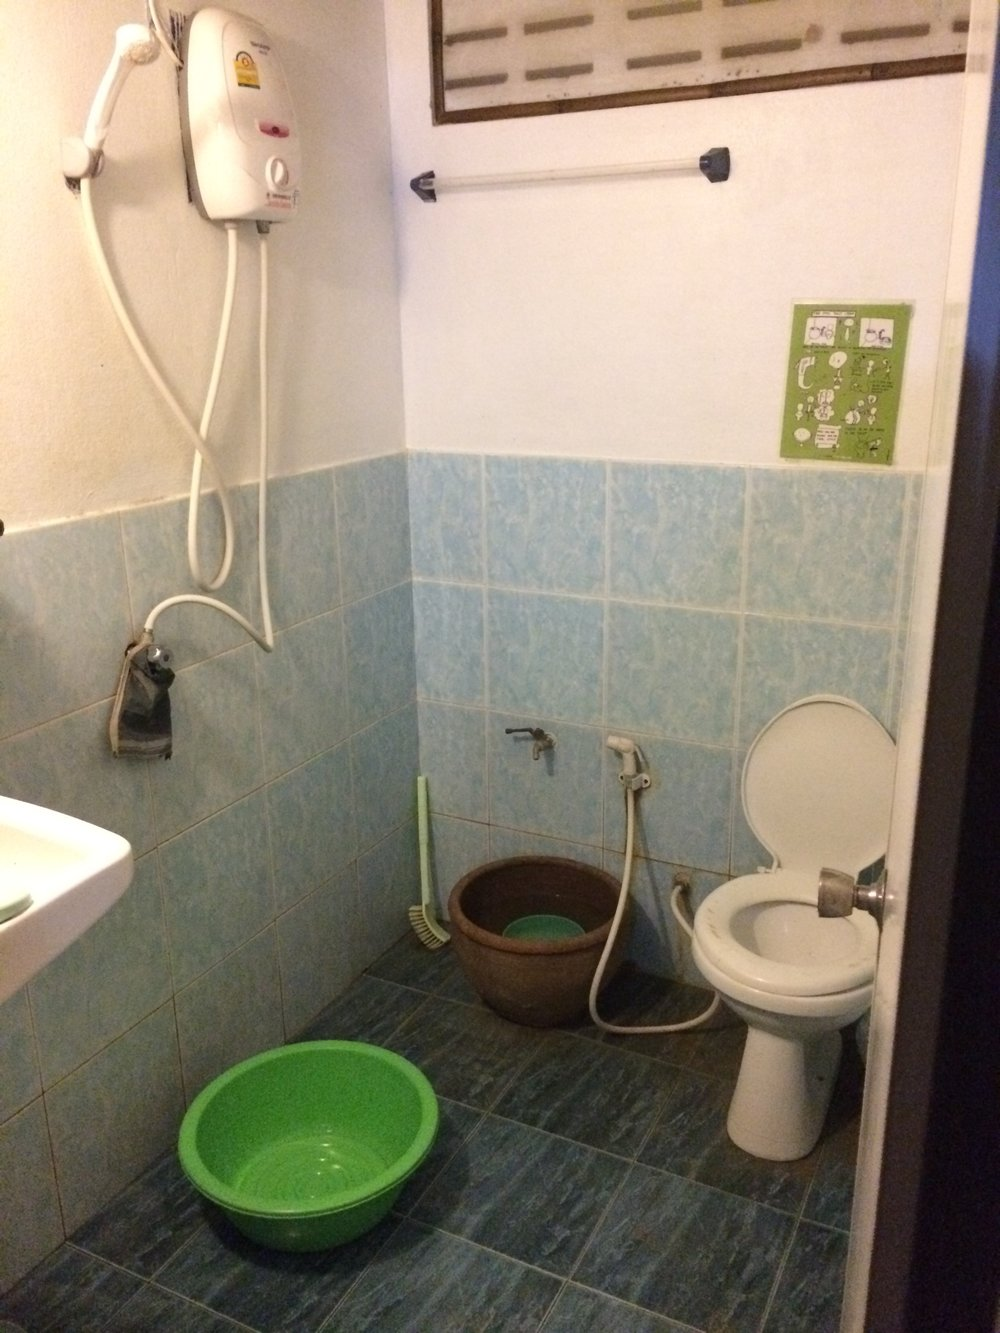 Our bathroom in Thailand.